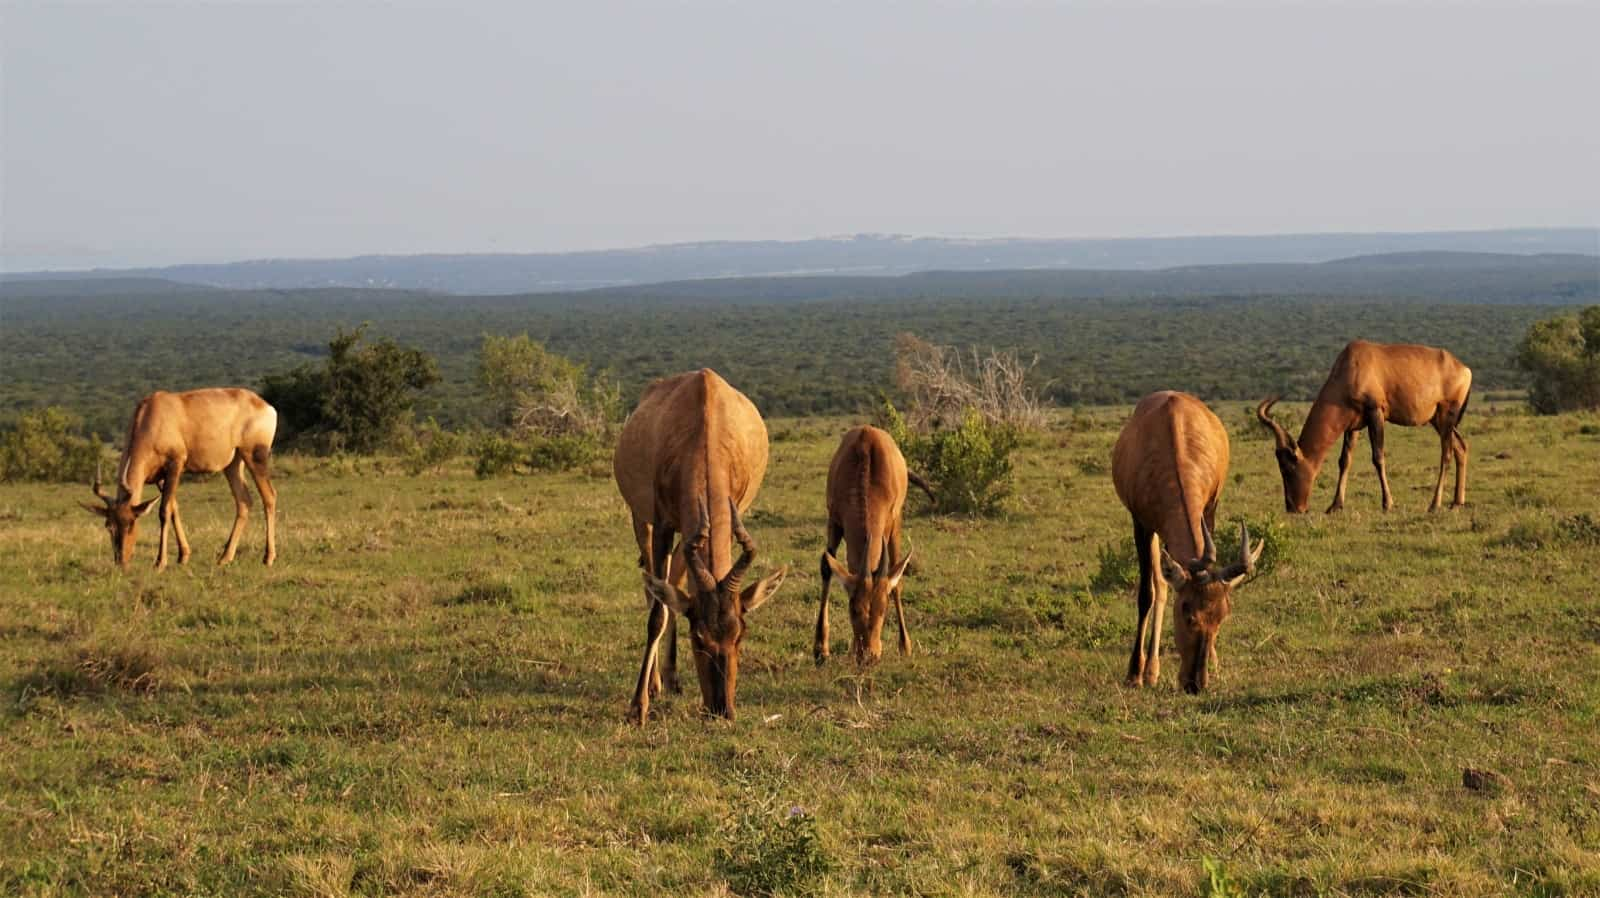 Red Hartebeest grazing at dusk in Addo Elephant National Park, South Africa